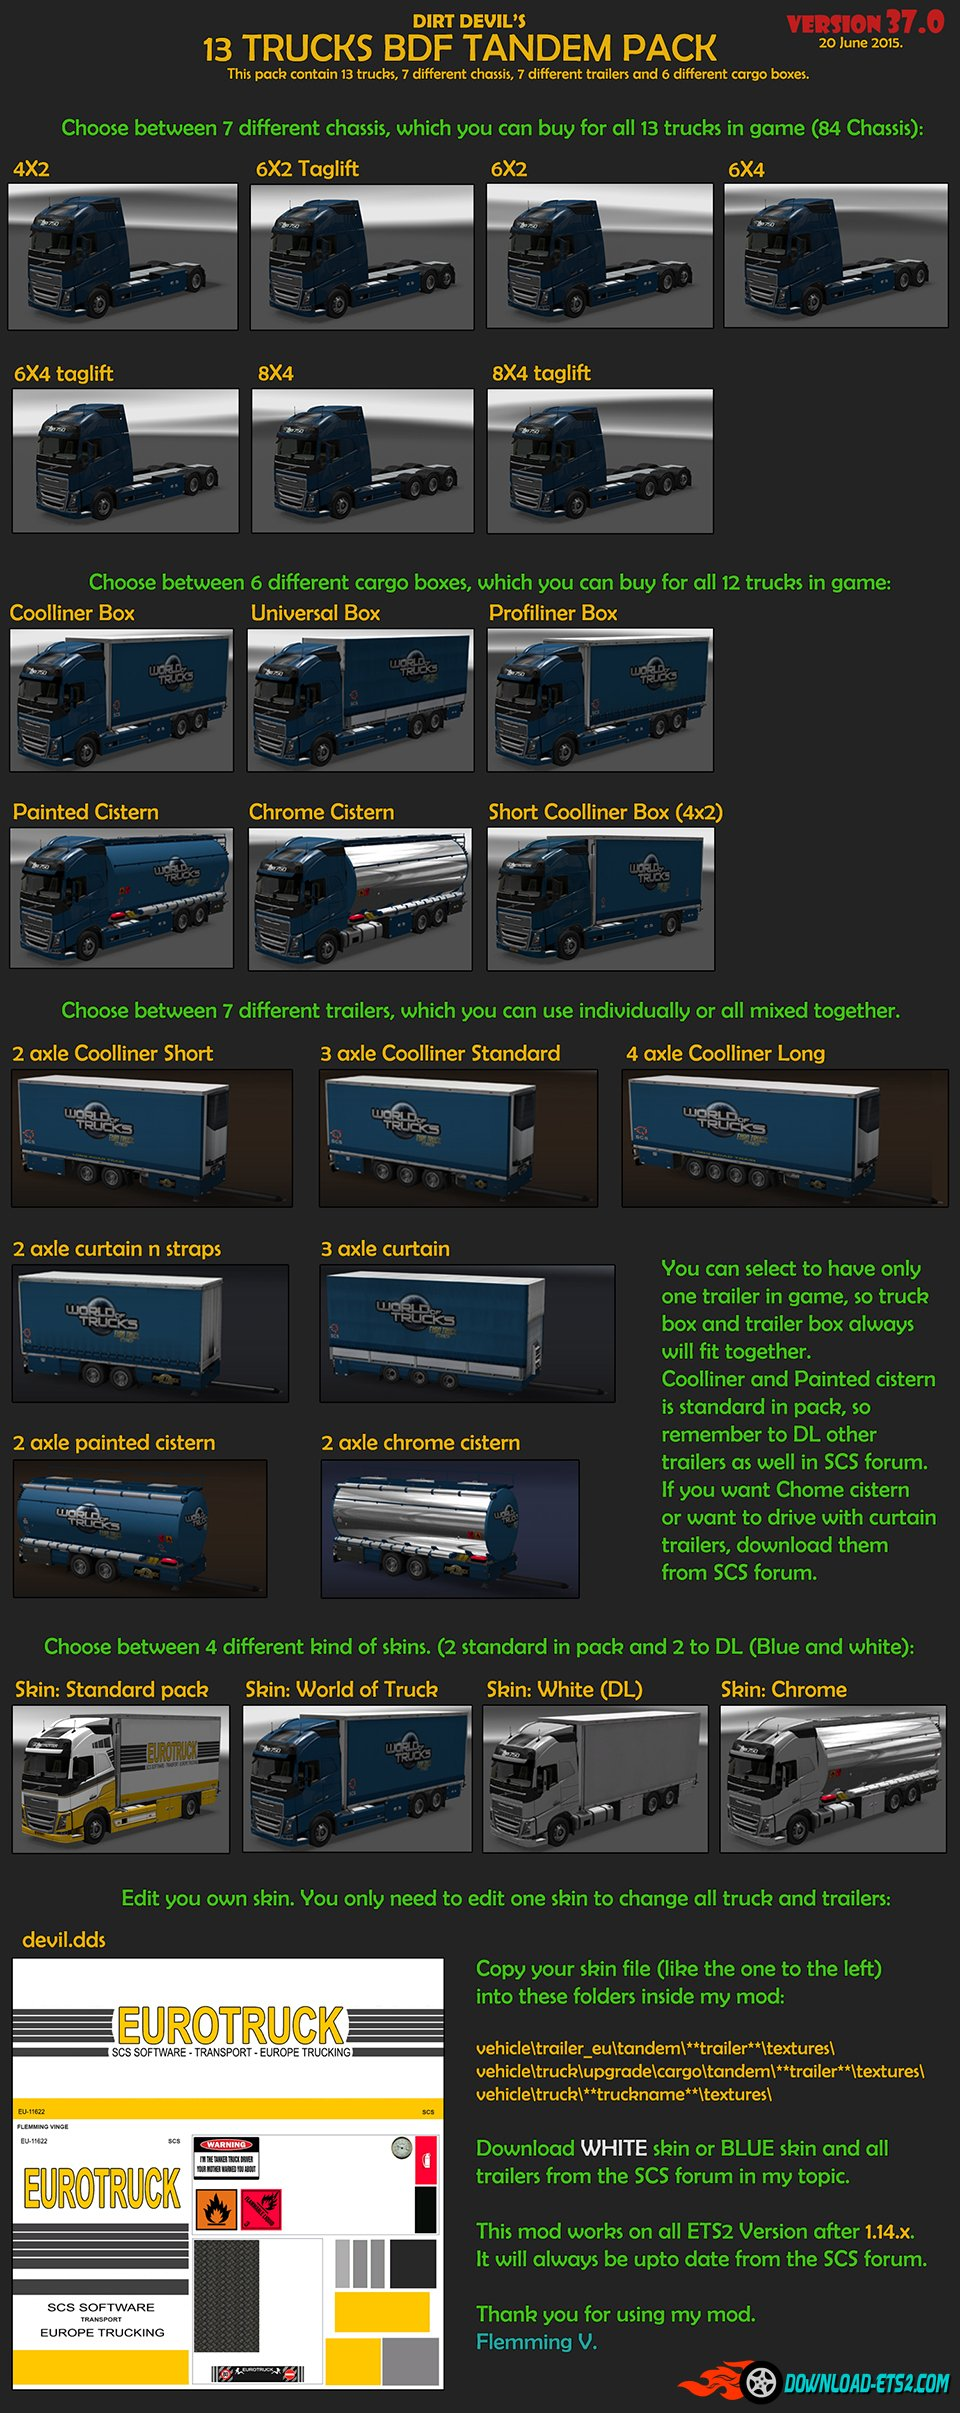 BDF Tandem Truck Pack (updated) v 37.0